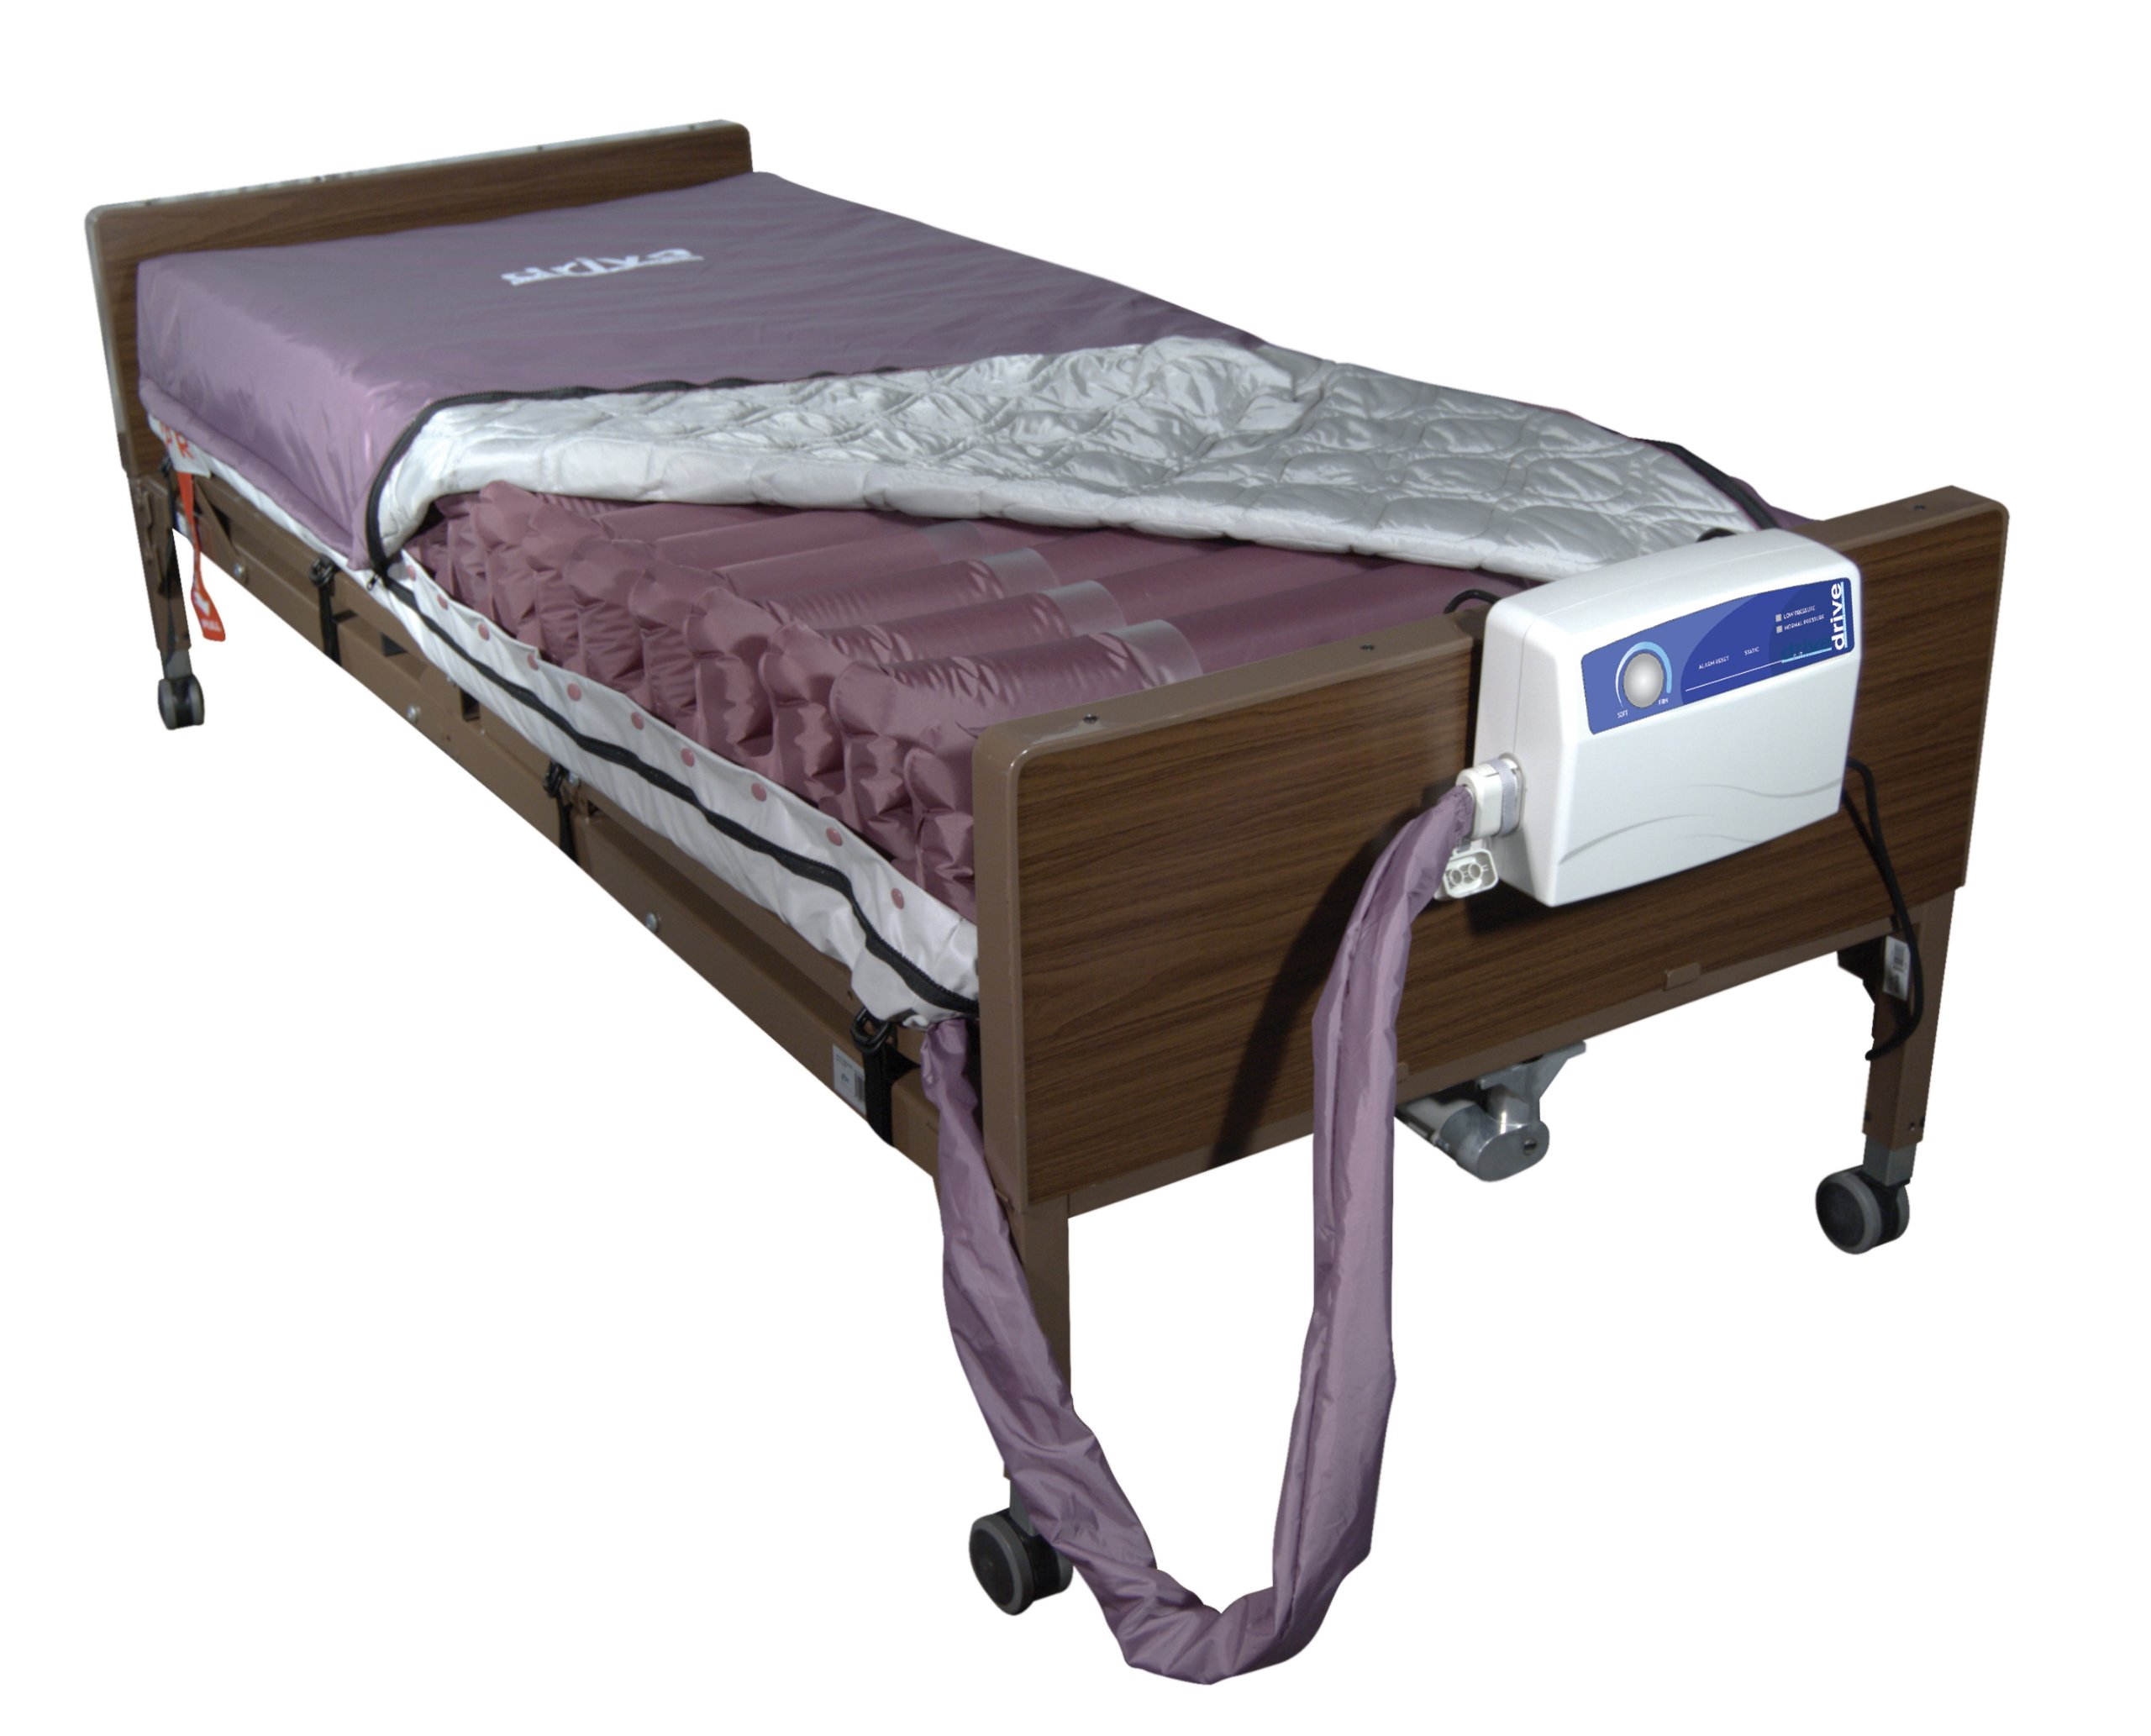 Drive Medical Med Aire Low Air Loss Mattress Replacement System with Alternating Pressure, Dark Purple, 8''